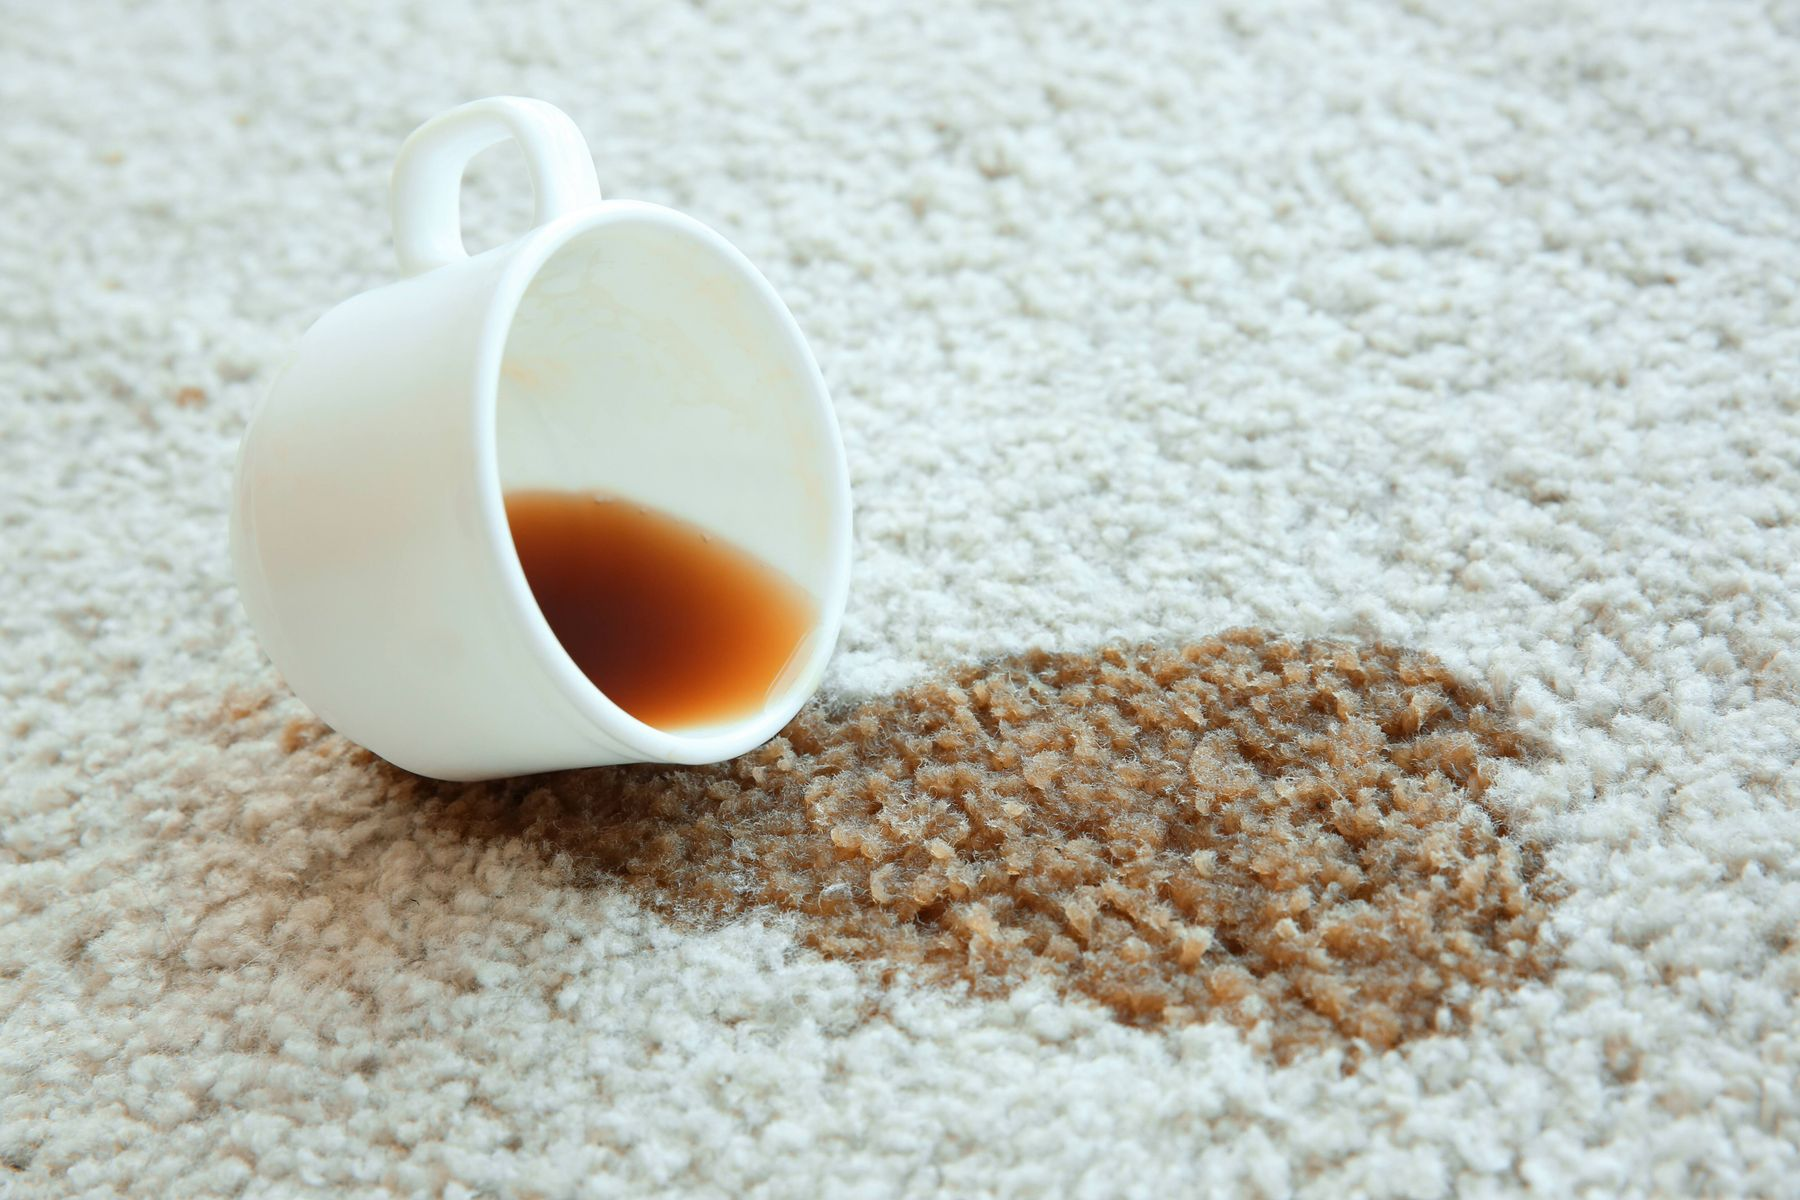 spilled-your-morning-coffee-on-your-expensive-hand-woven-carpet-worry-not-Check-out-this-hack-to-get-rid-of-that-tough-stain